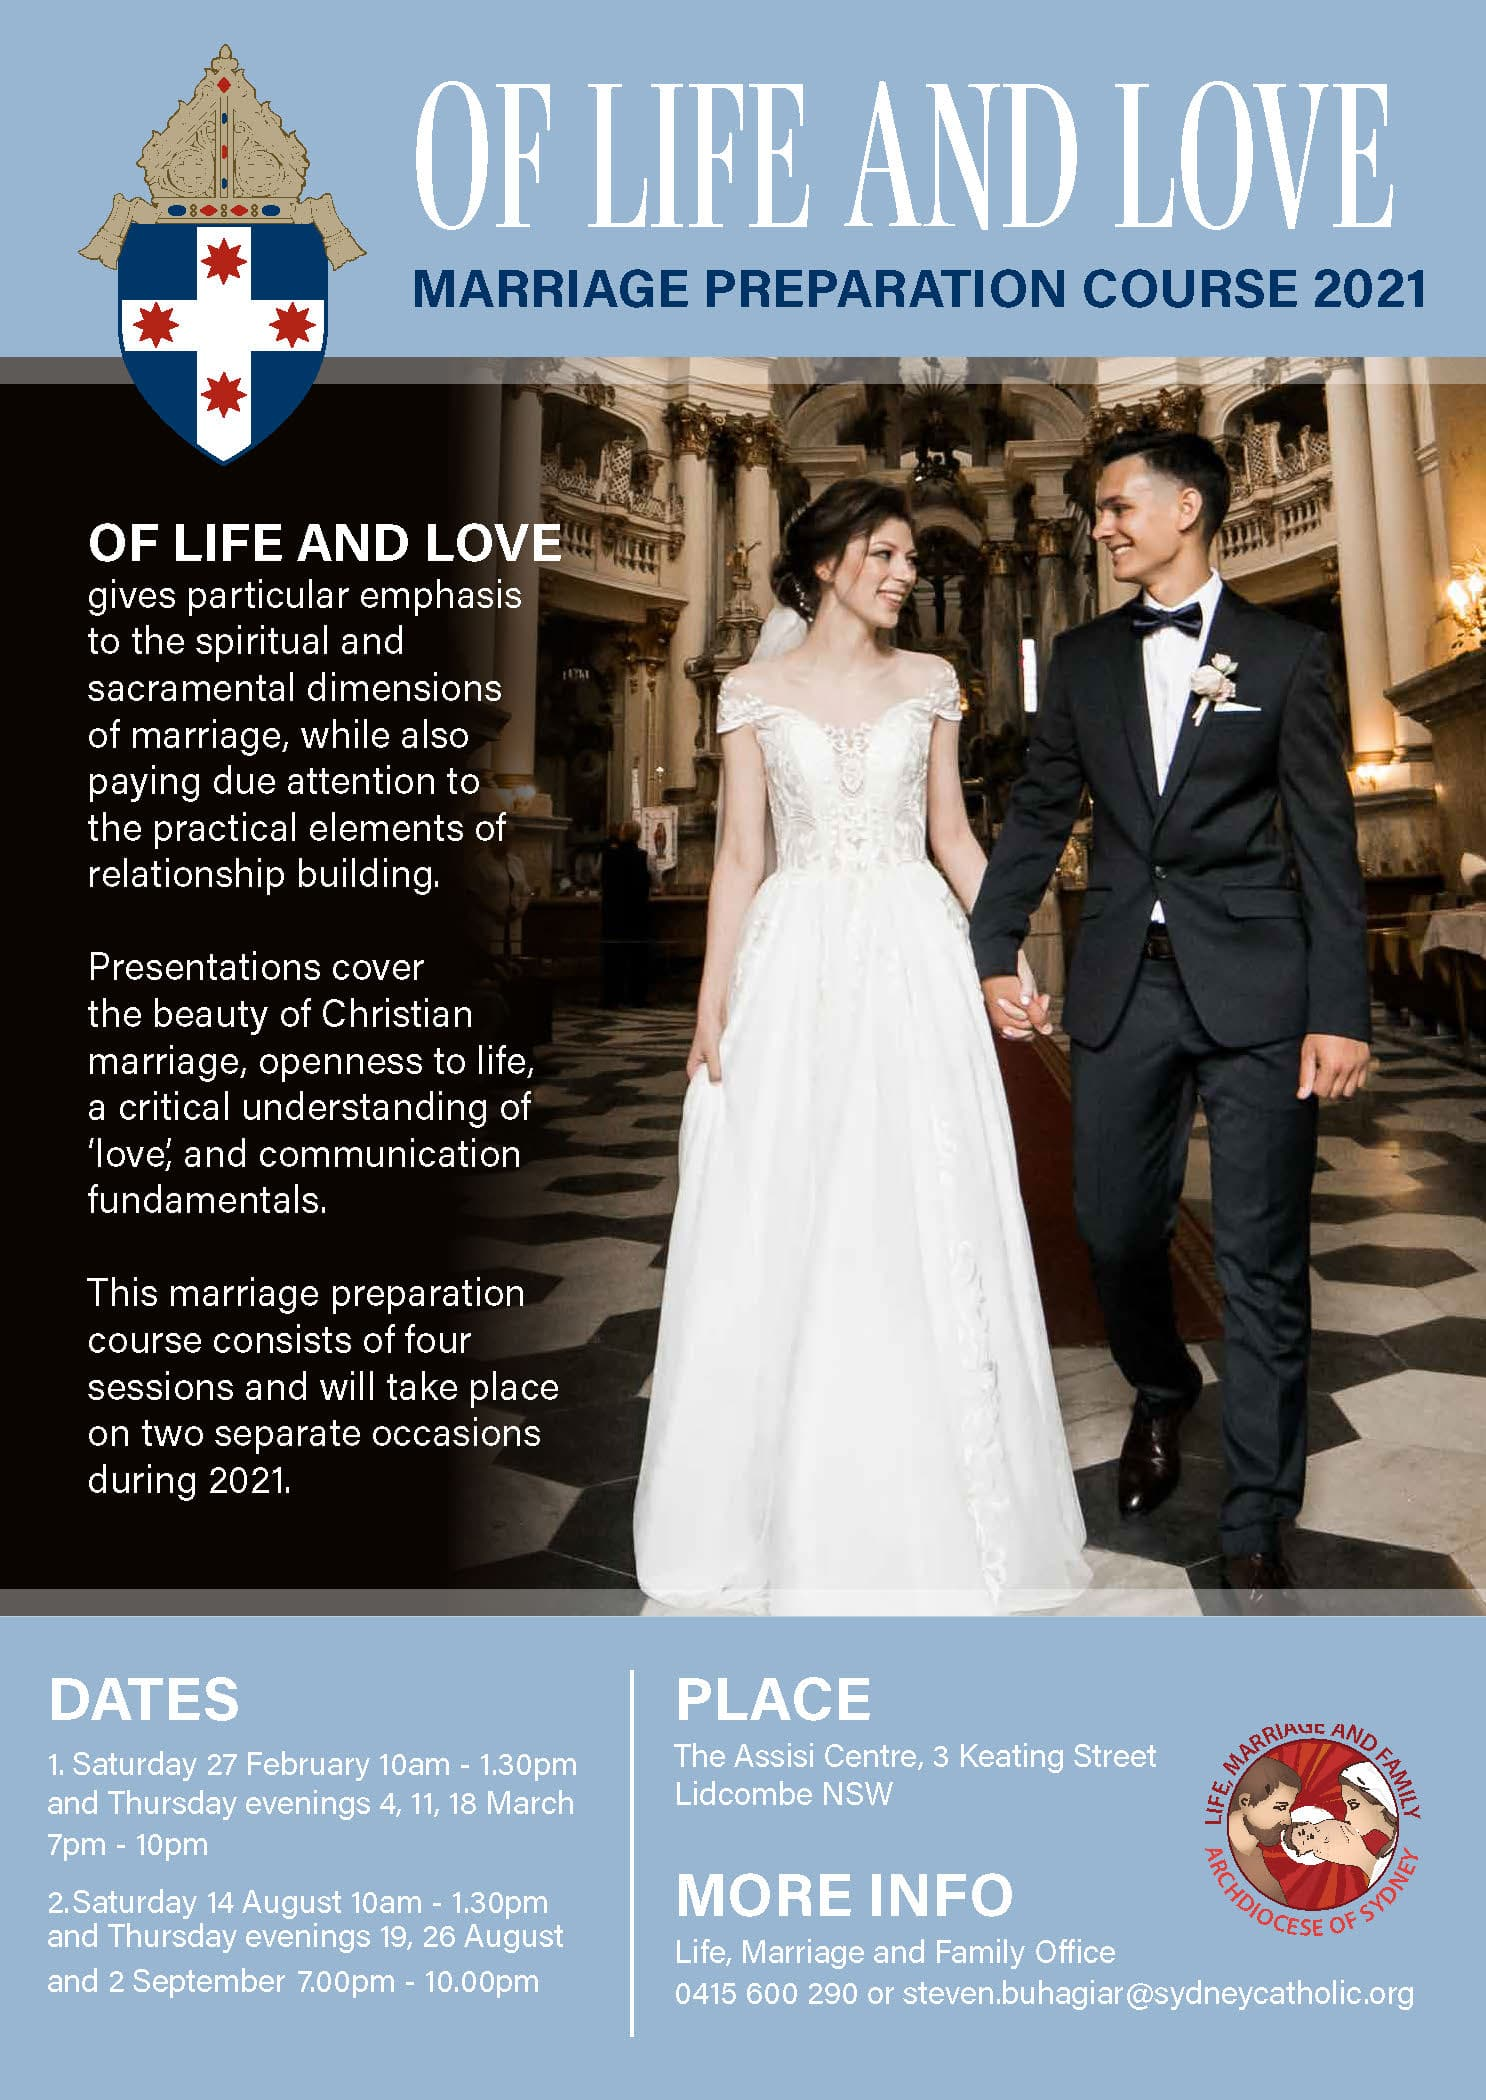 Of Life and Love: Marriage Preparation Course 2021 - Catholic Archdiocese  of Sydney